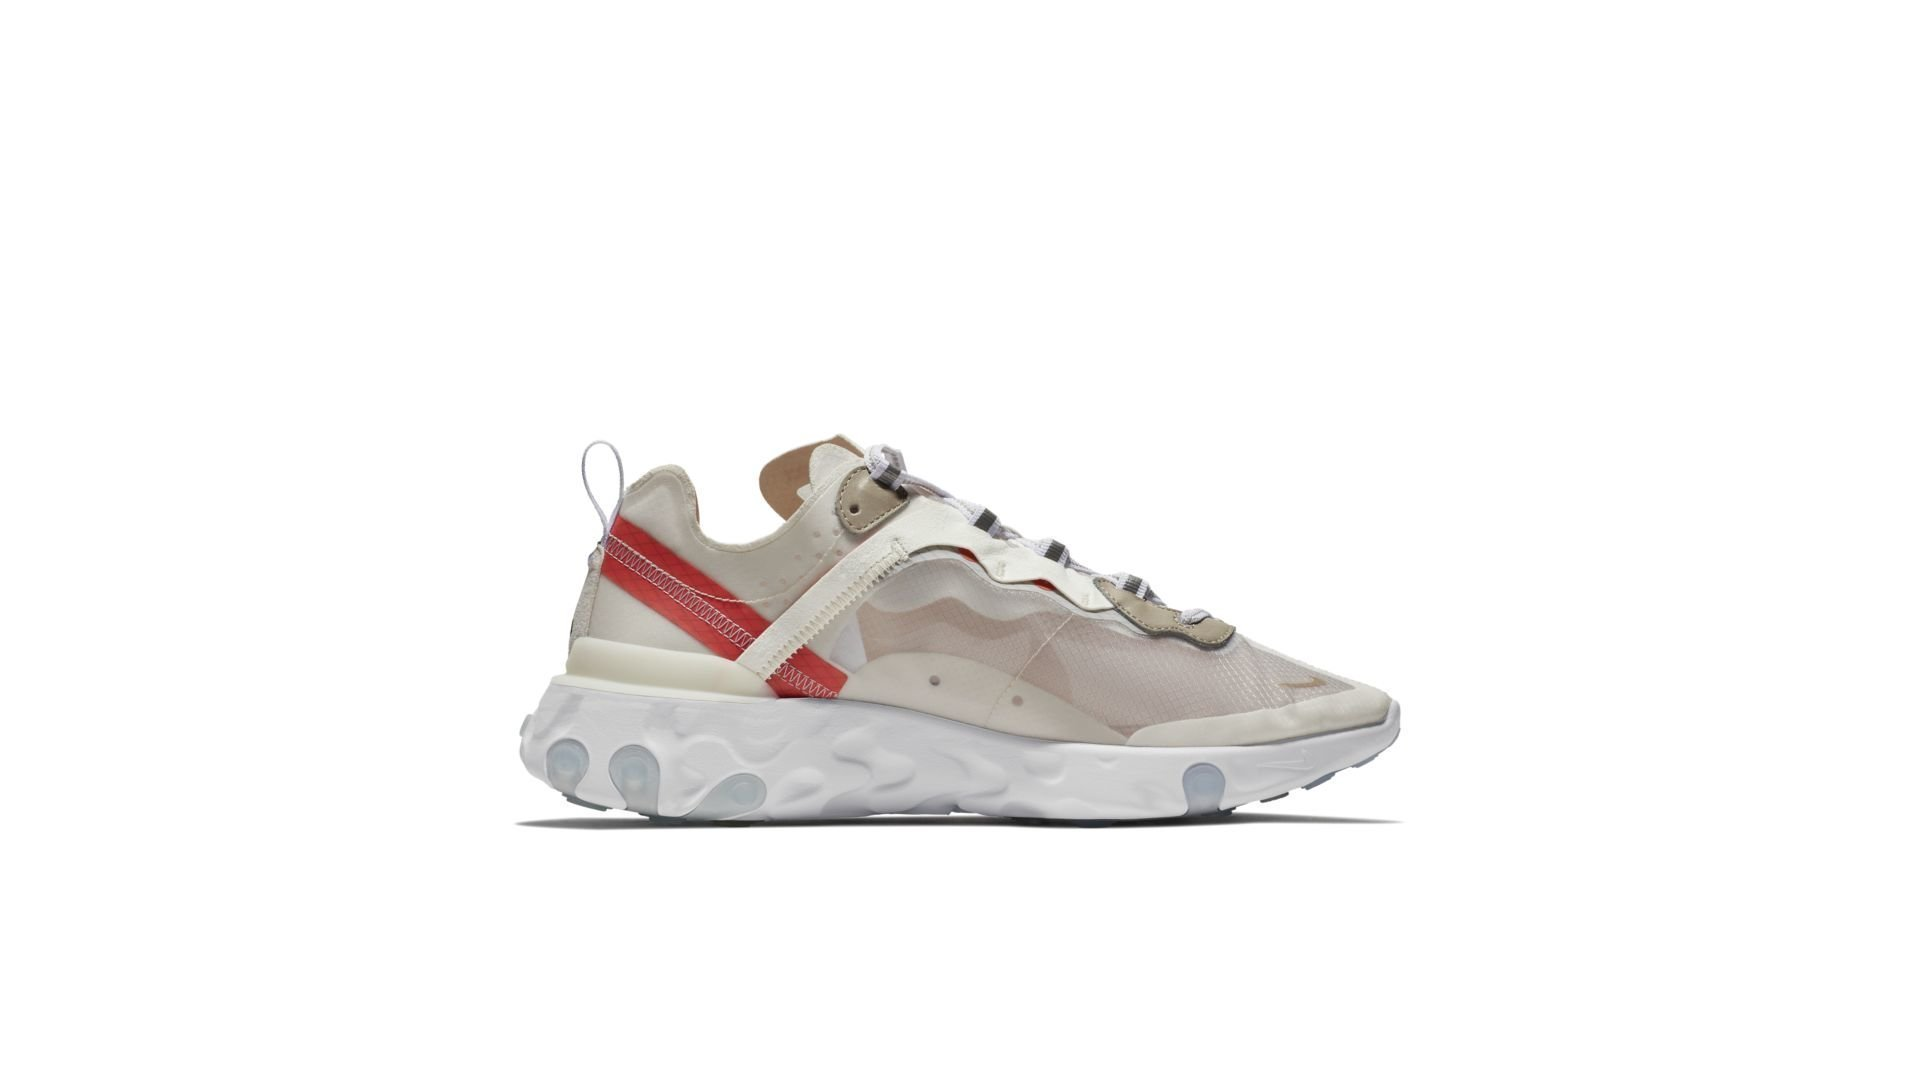 Nike React Element 87 'White' (AQ1090-100)